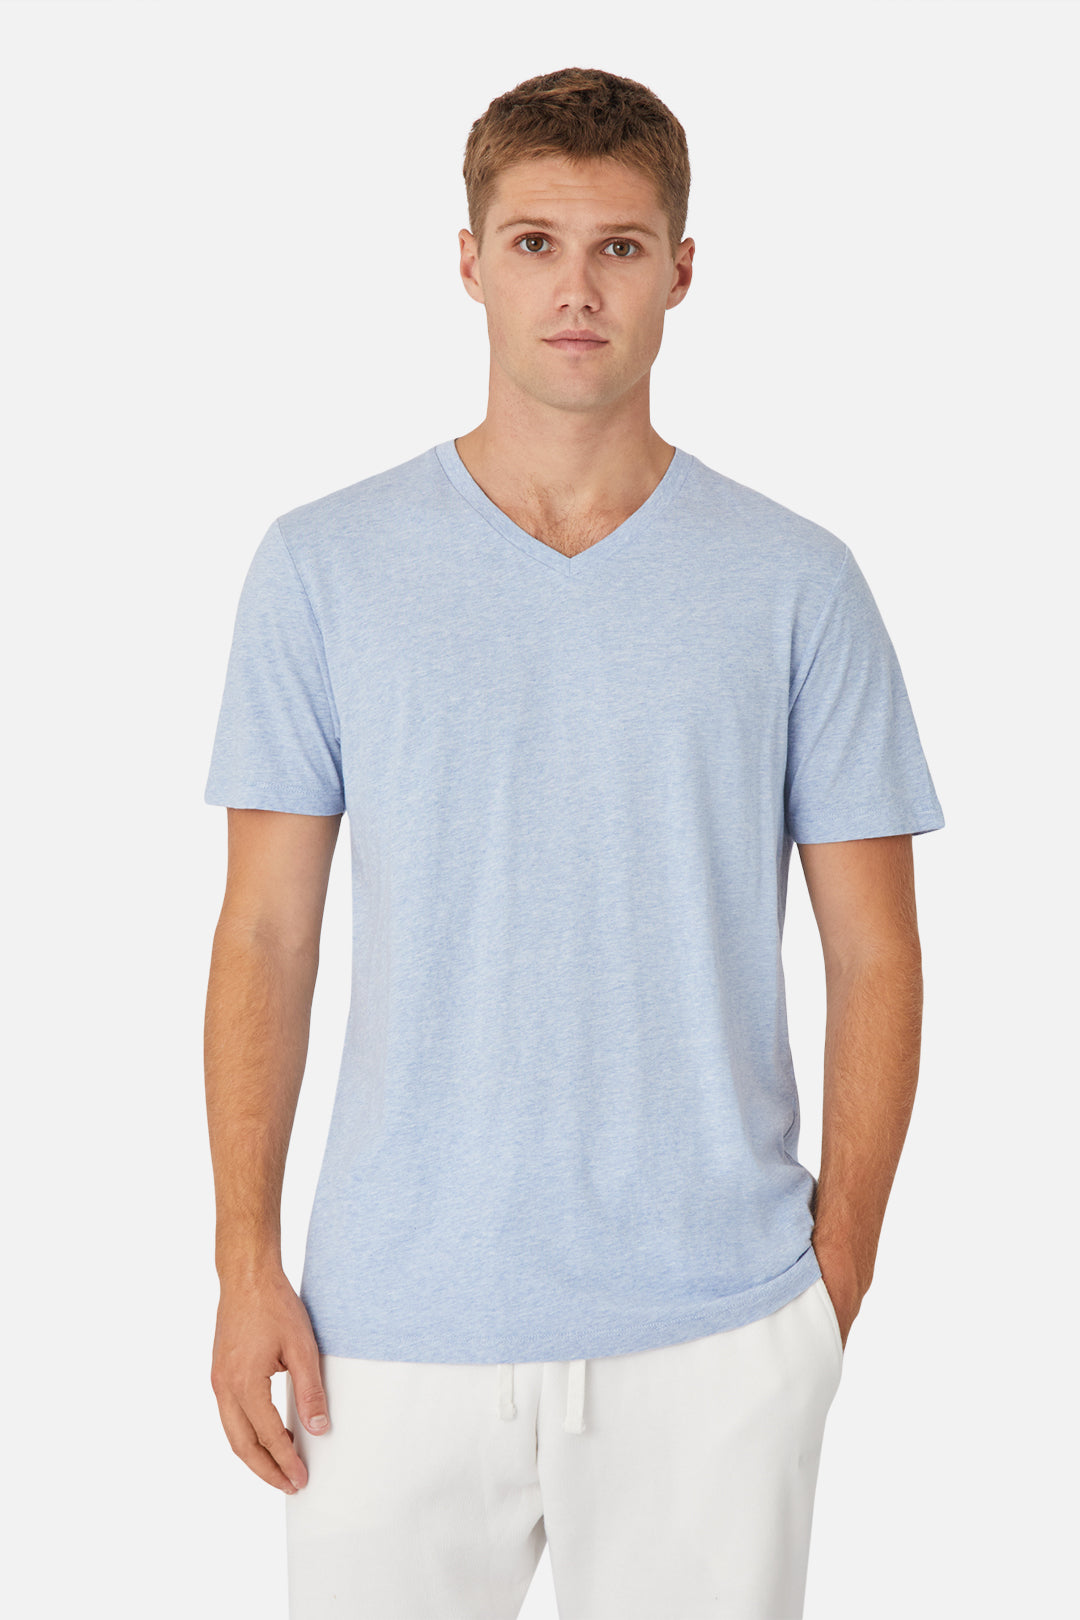 The New Basic Vee Tee - Blue Marle